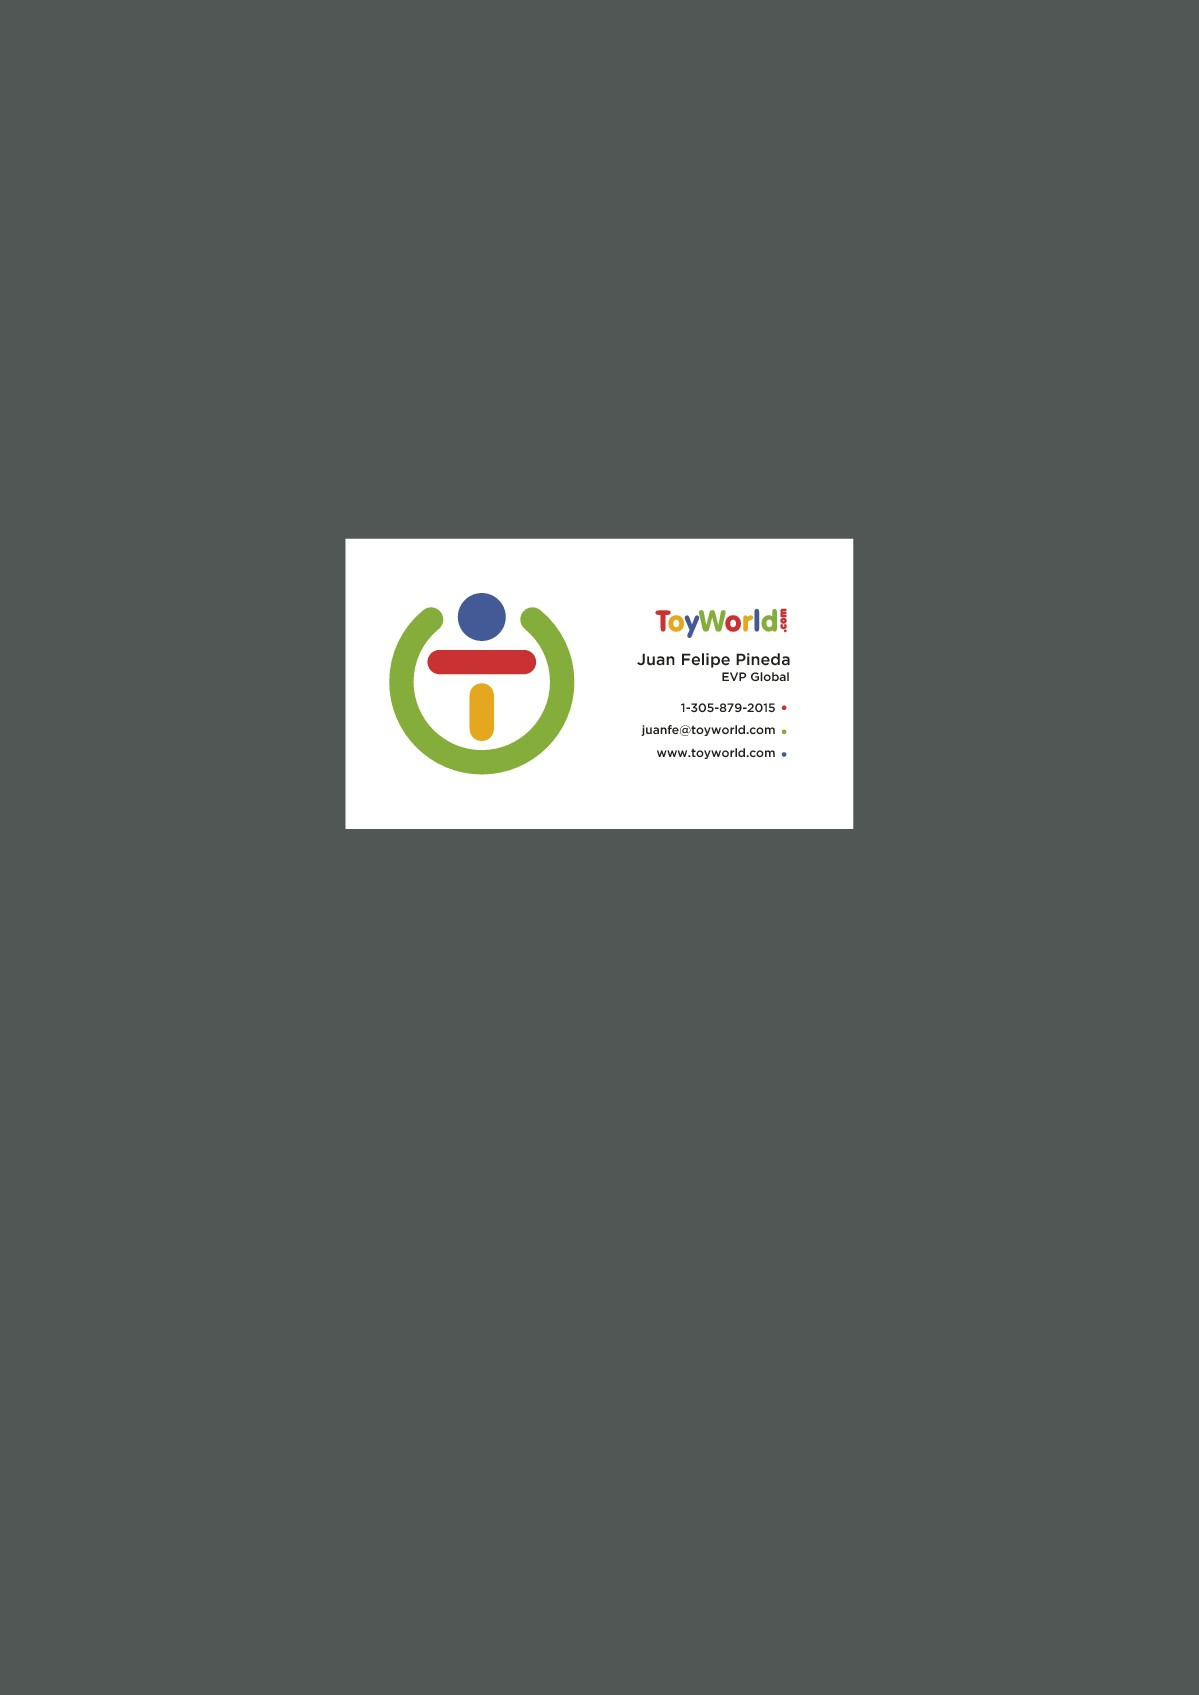 1. Brand Guide : $25 2. Power Point Template : $5 3. FaceBook Cover : $20 4. Stationary Kit (Letterhead - Business Card)